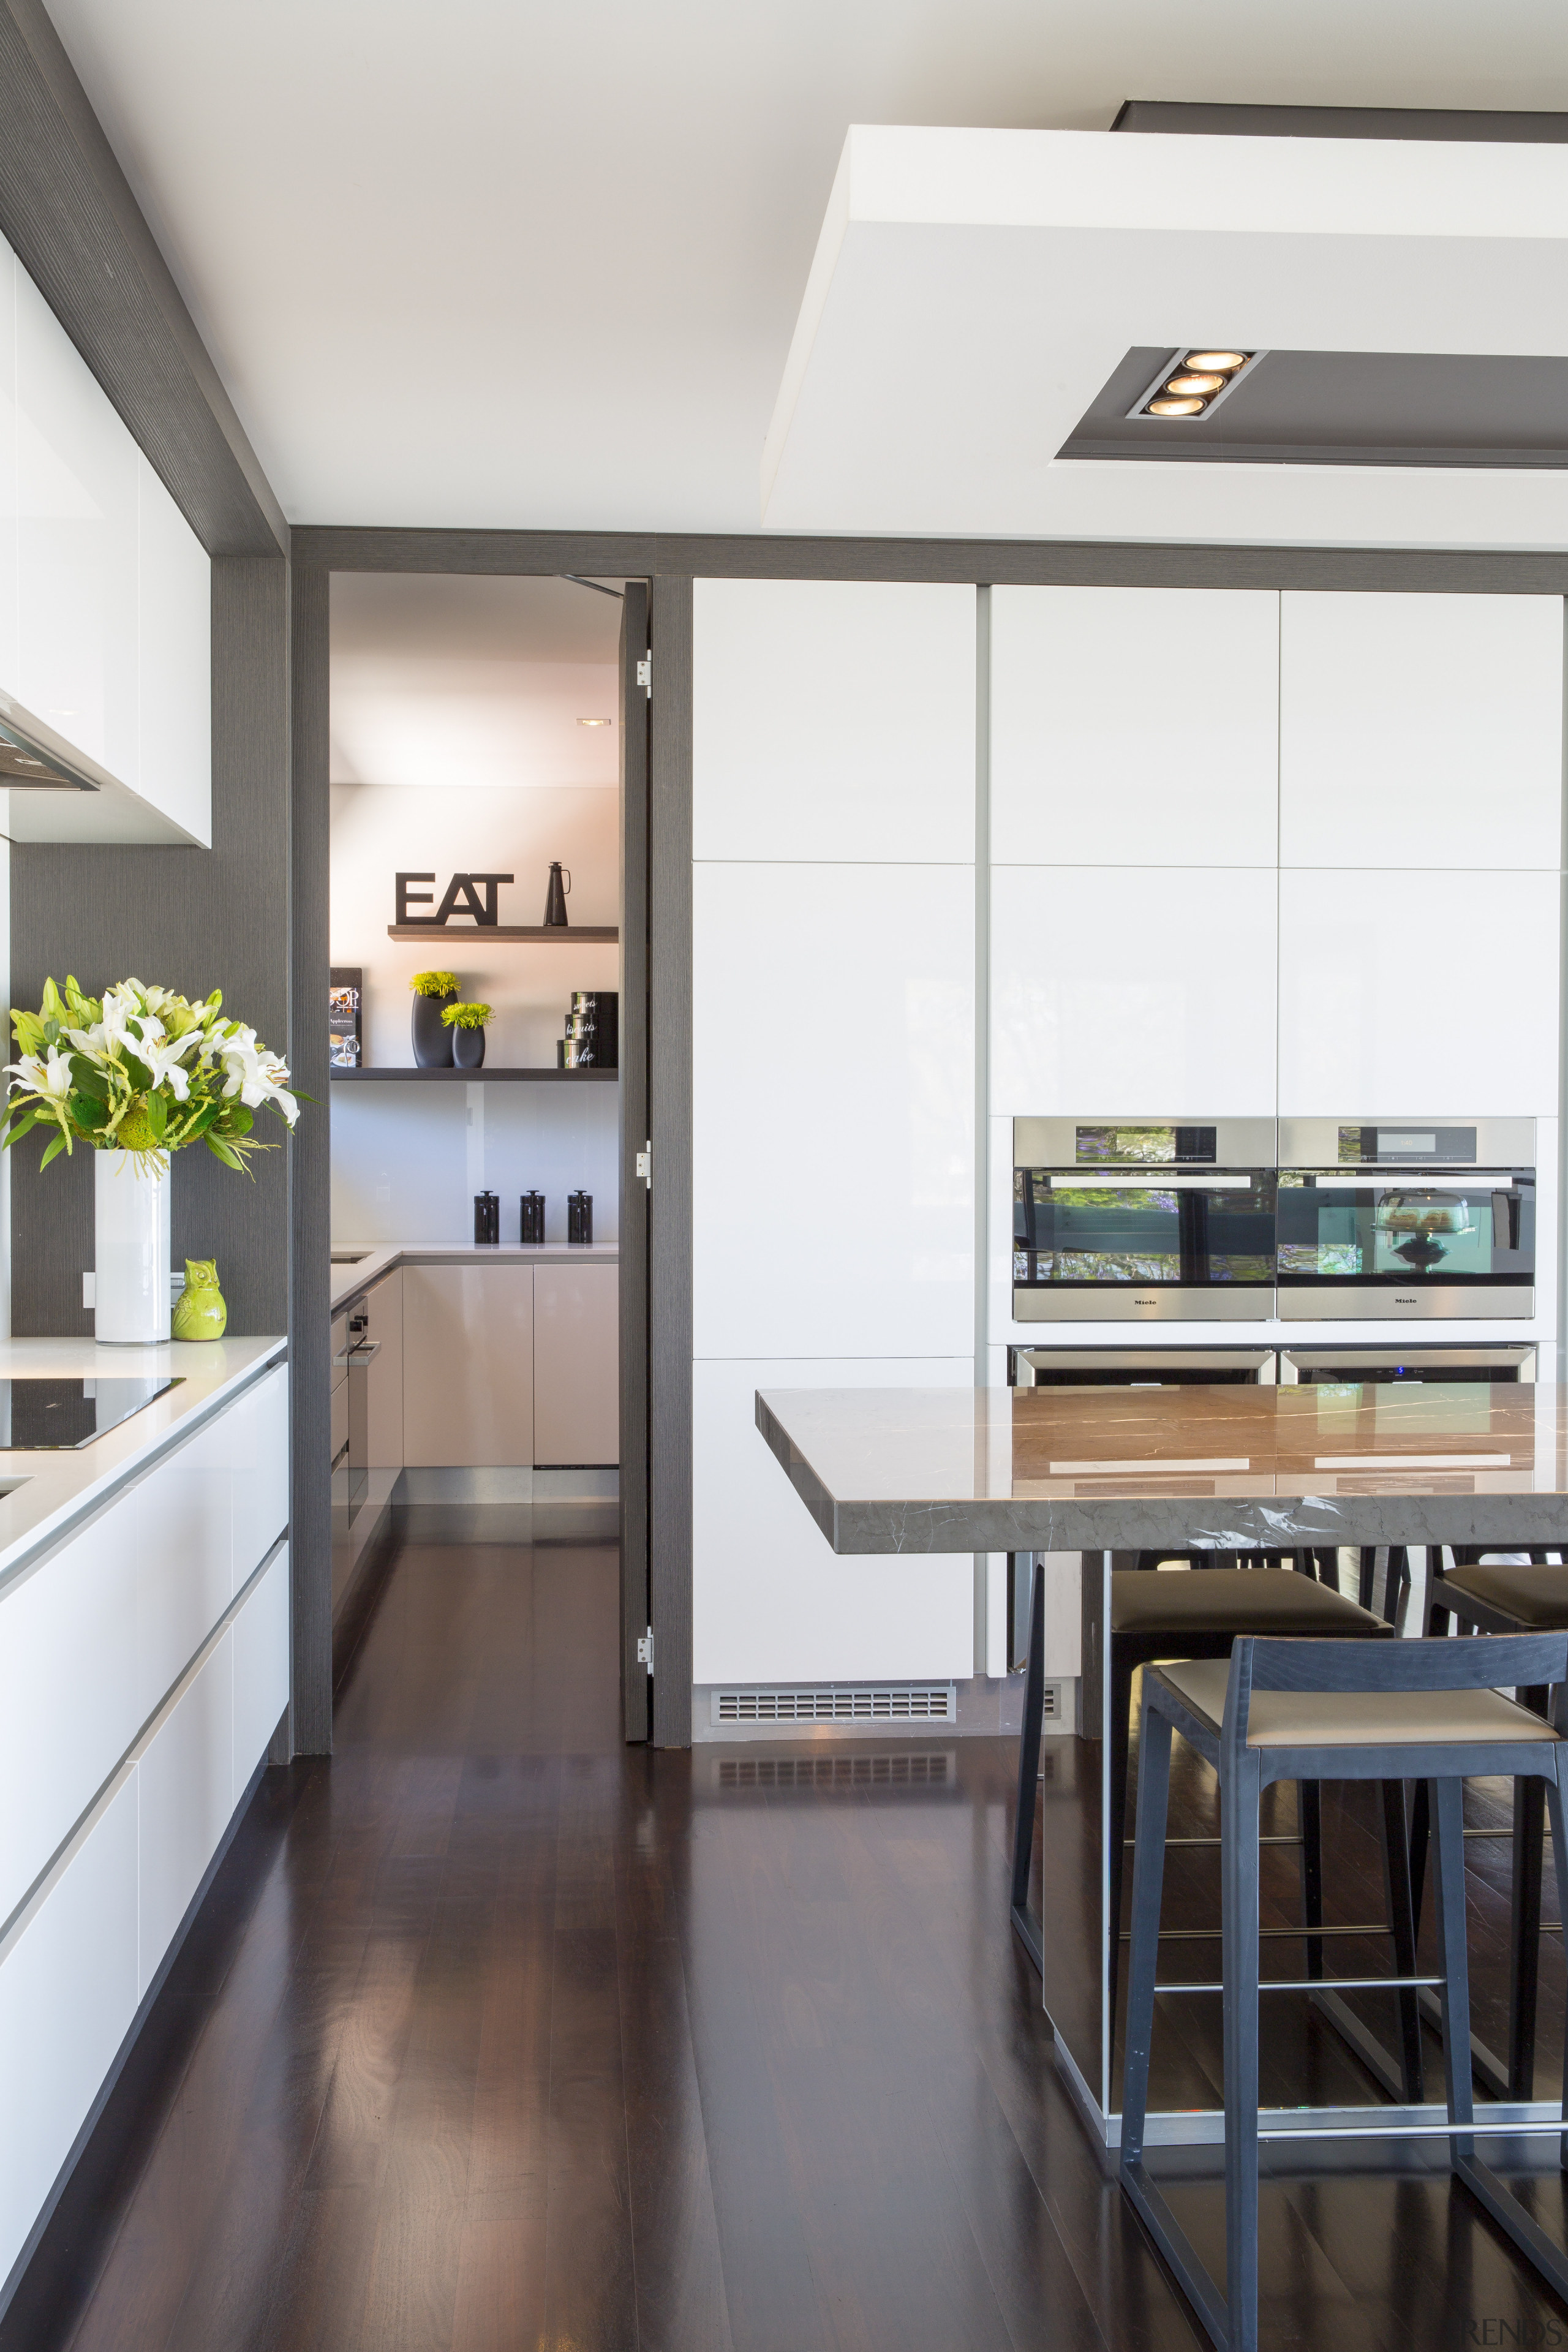 Contemporary kitchen with marble benchtop, handleless cabinetry and countertop, interior design, kitchen, white